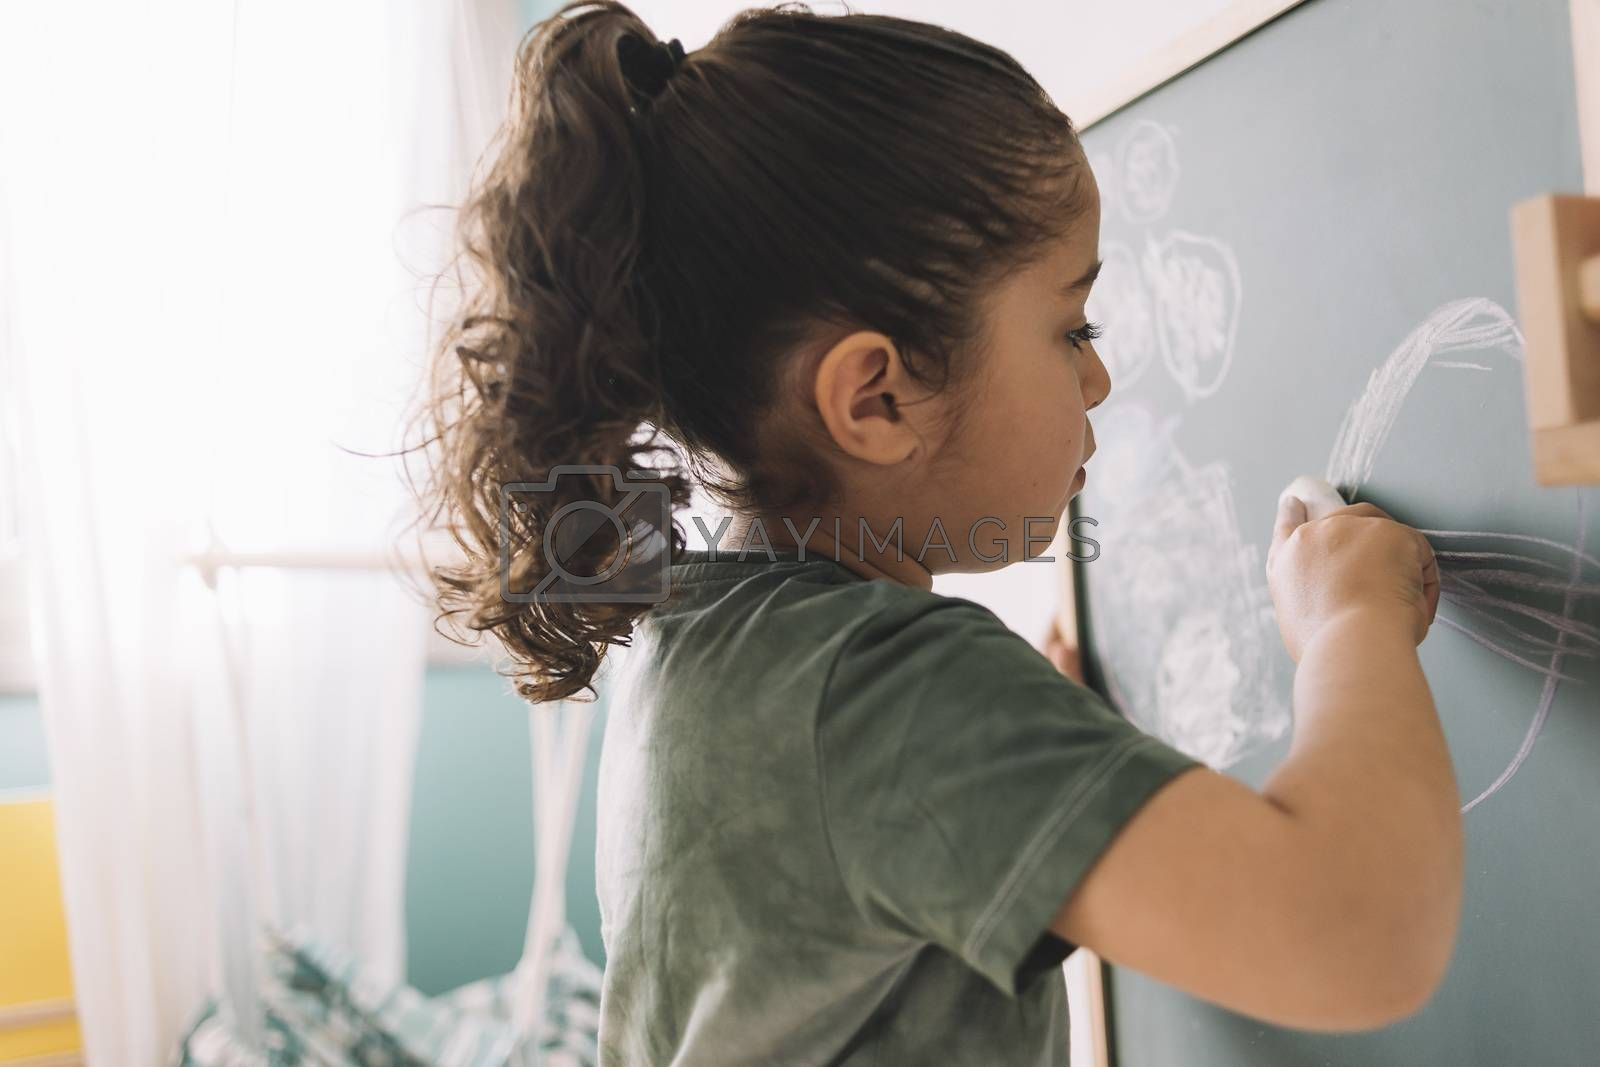 little girl drawing on a blackboard at home by raulmellado